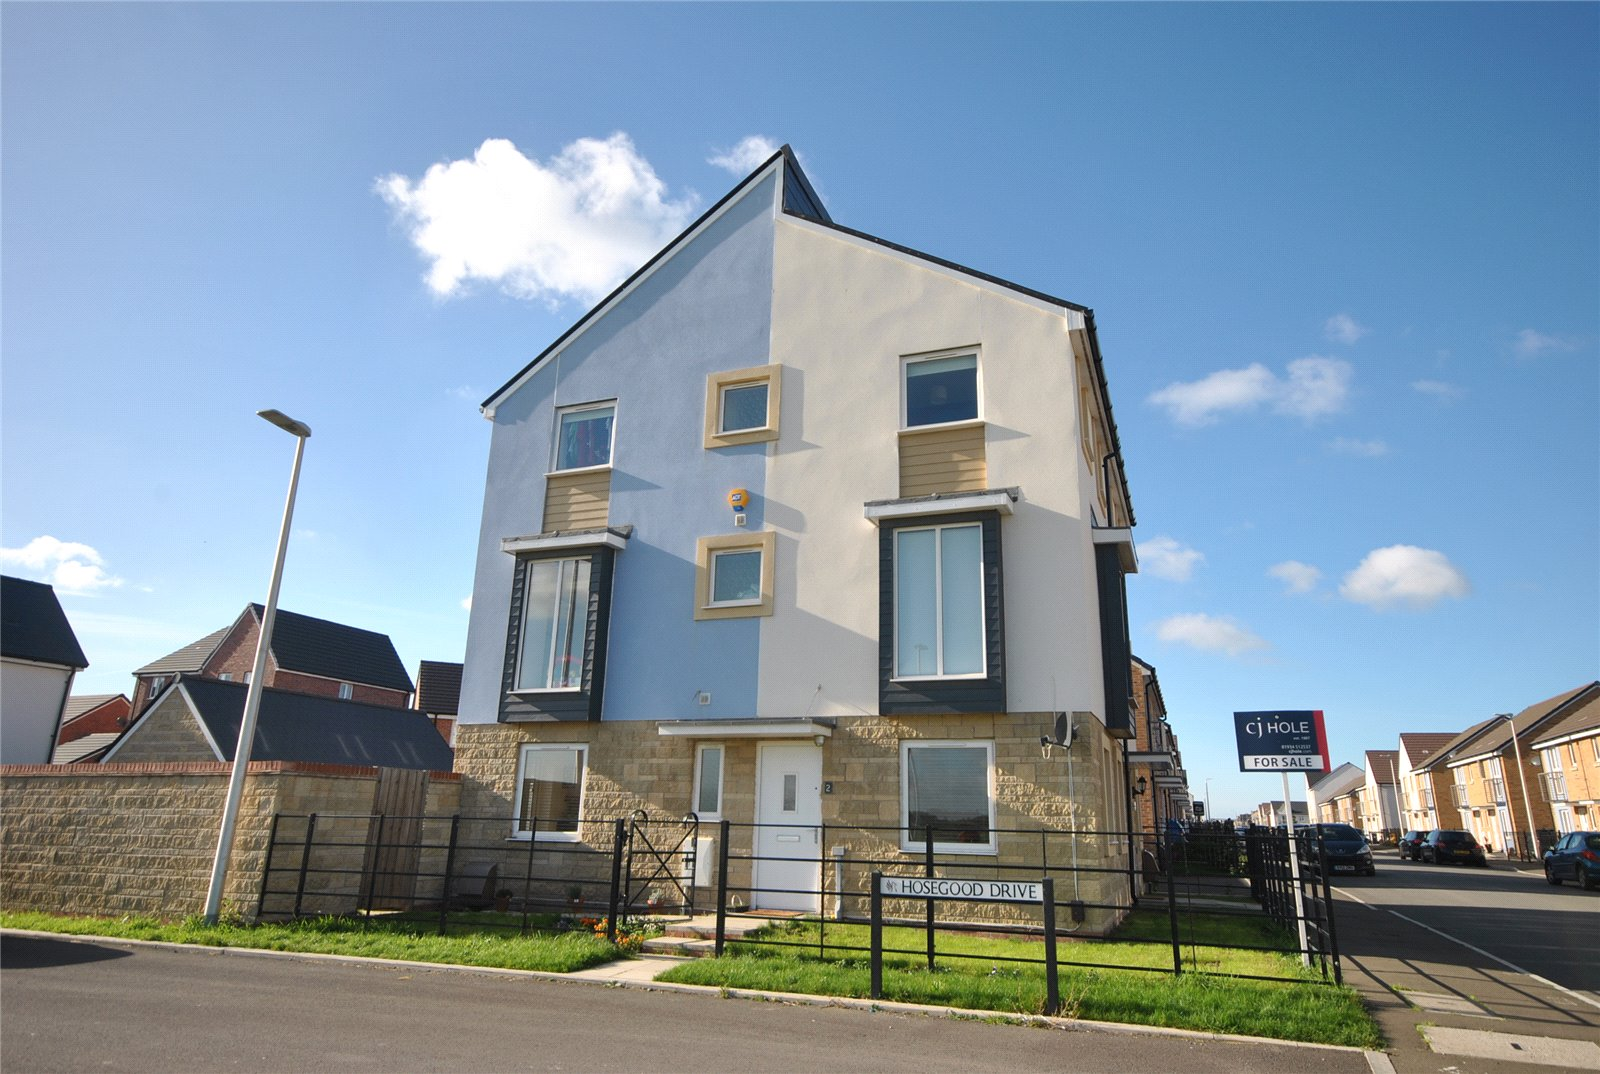 4 Bedrooms Property for sale in Hosegood Drive Haywood Village Weston-super-Mare BS24